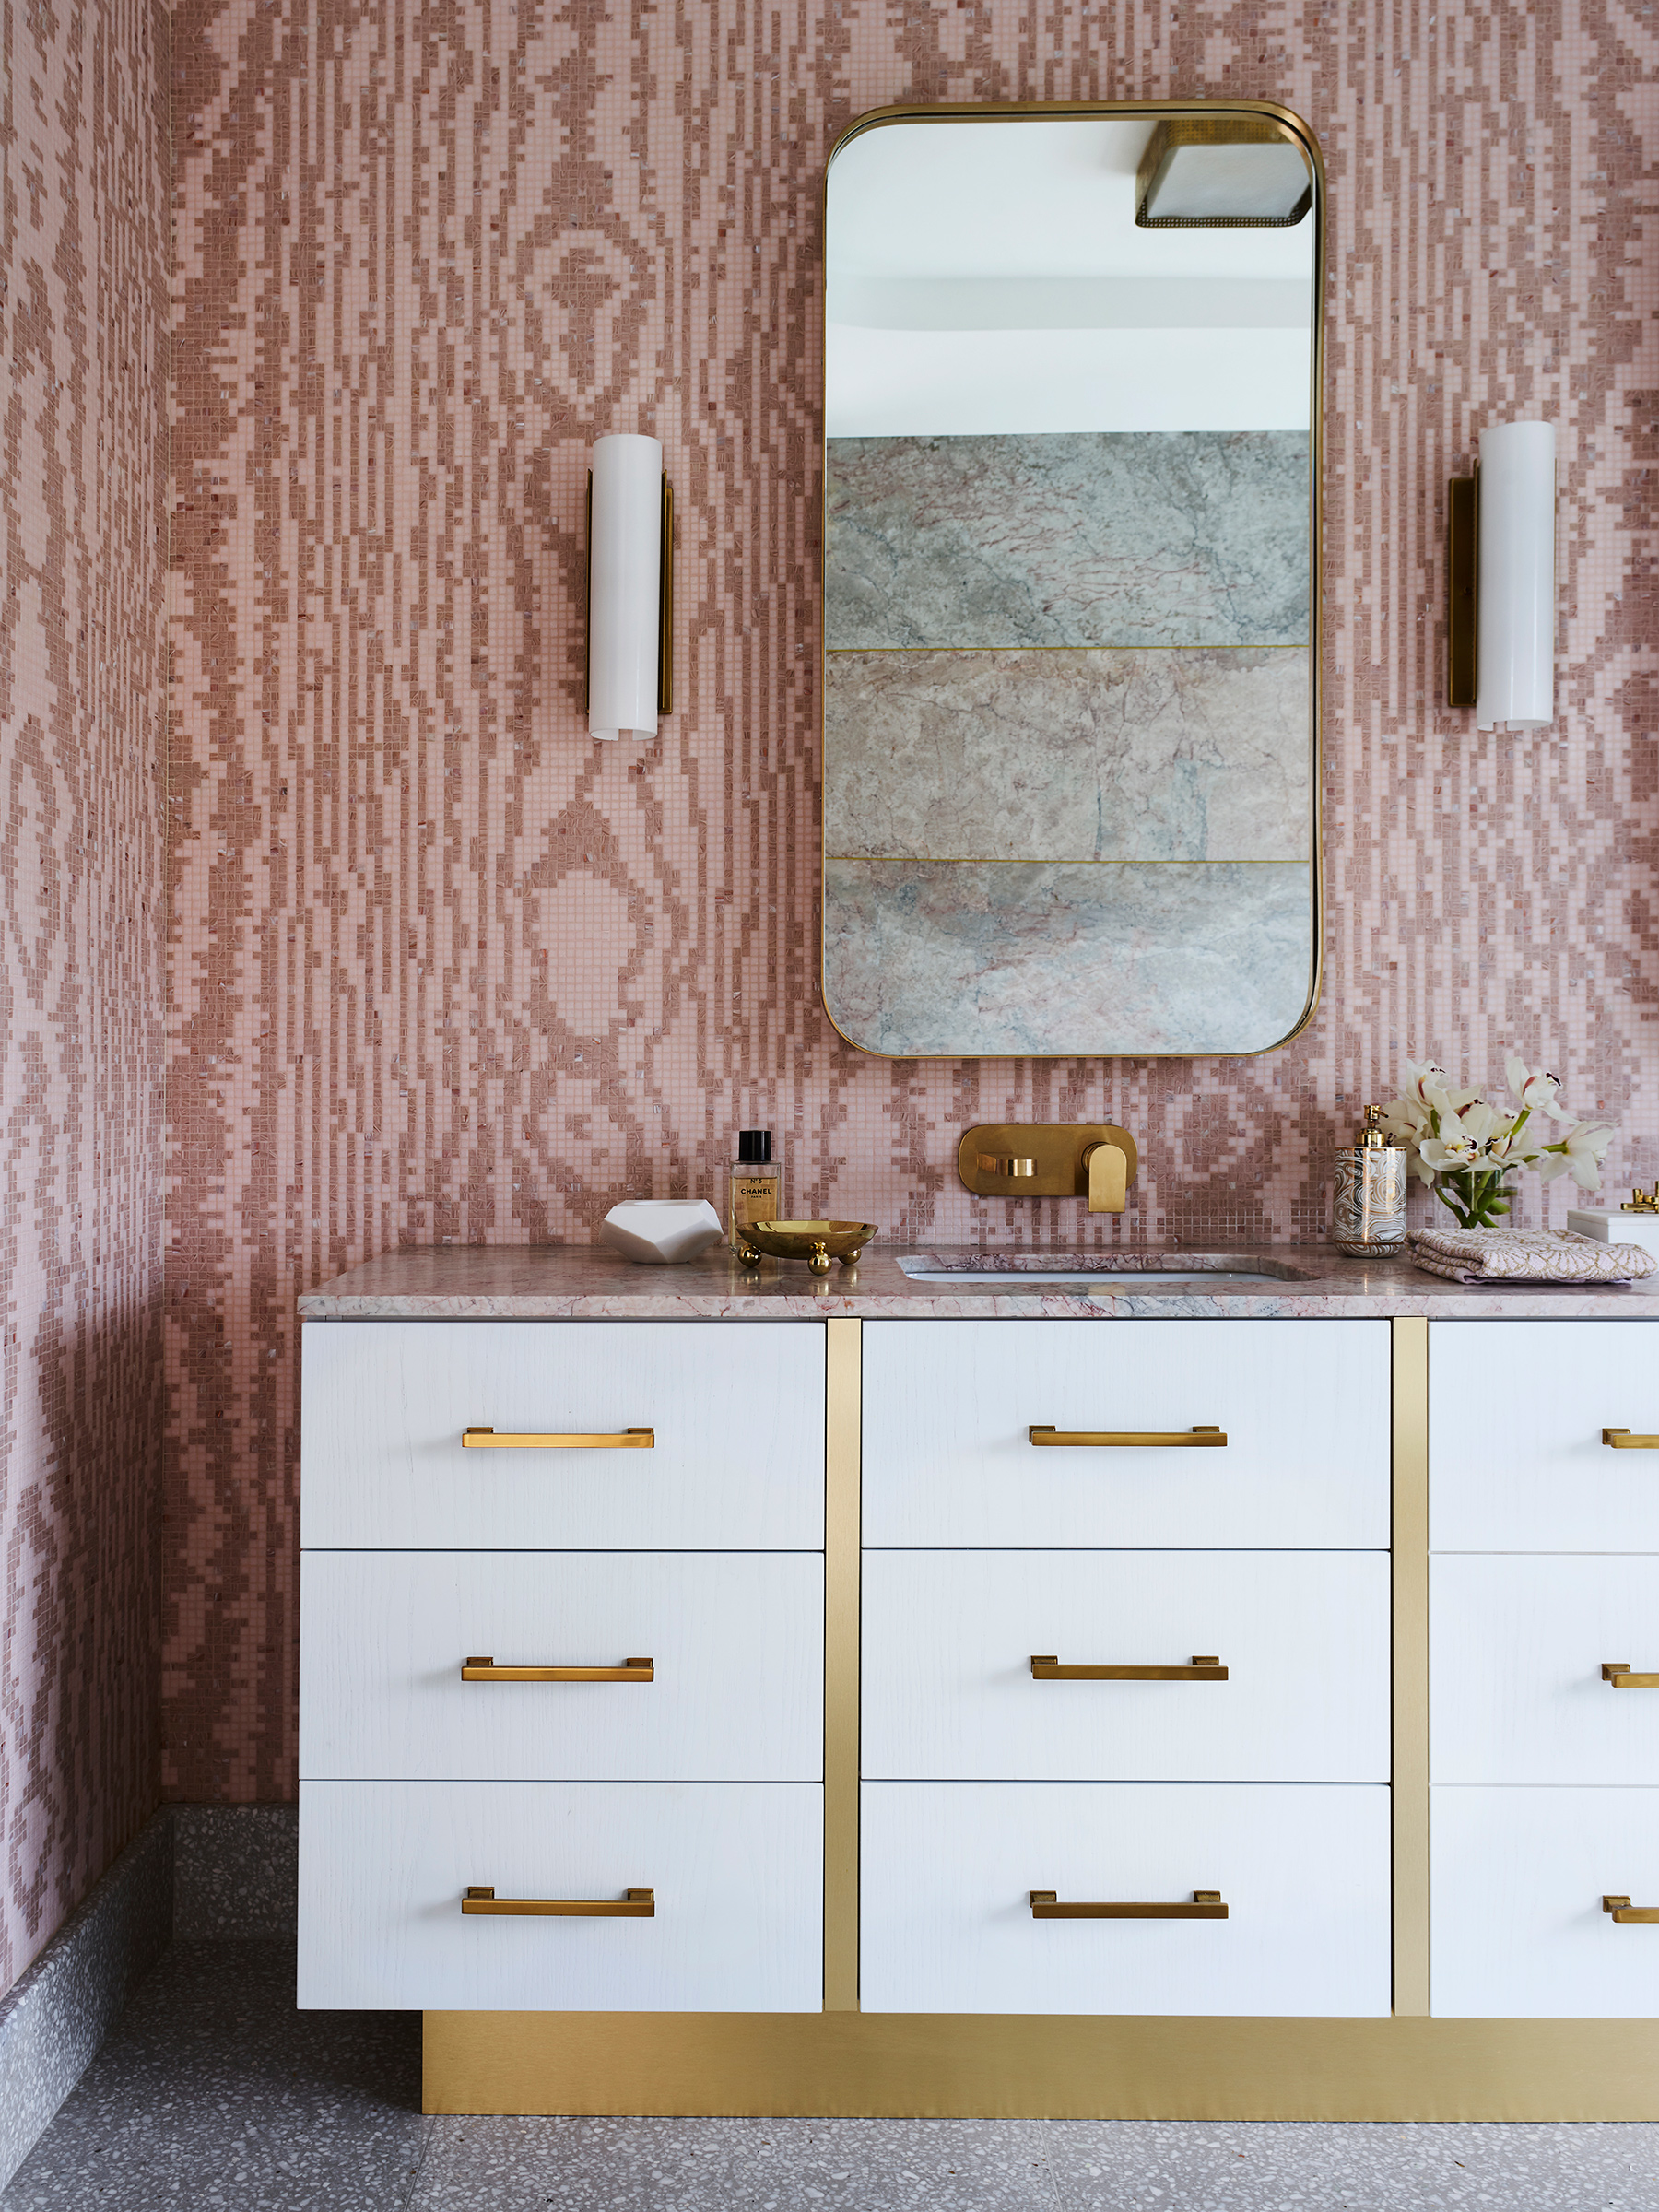 Greg Natale MOIRE ROSE Bisazza mosaic pattern